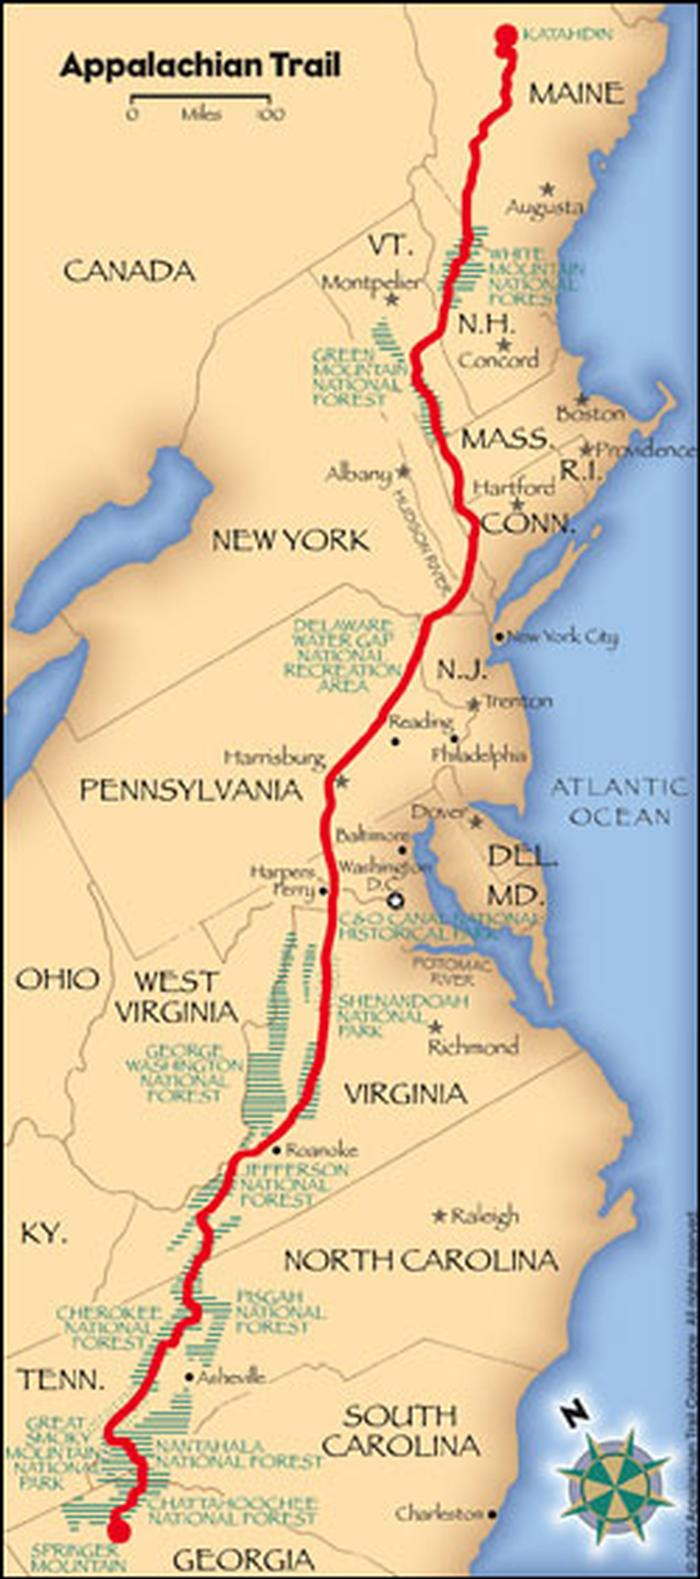 A map showing the Appalachian Trail.